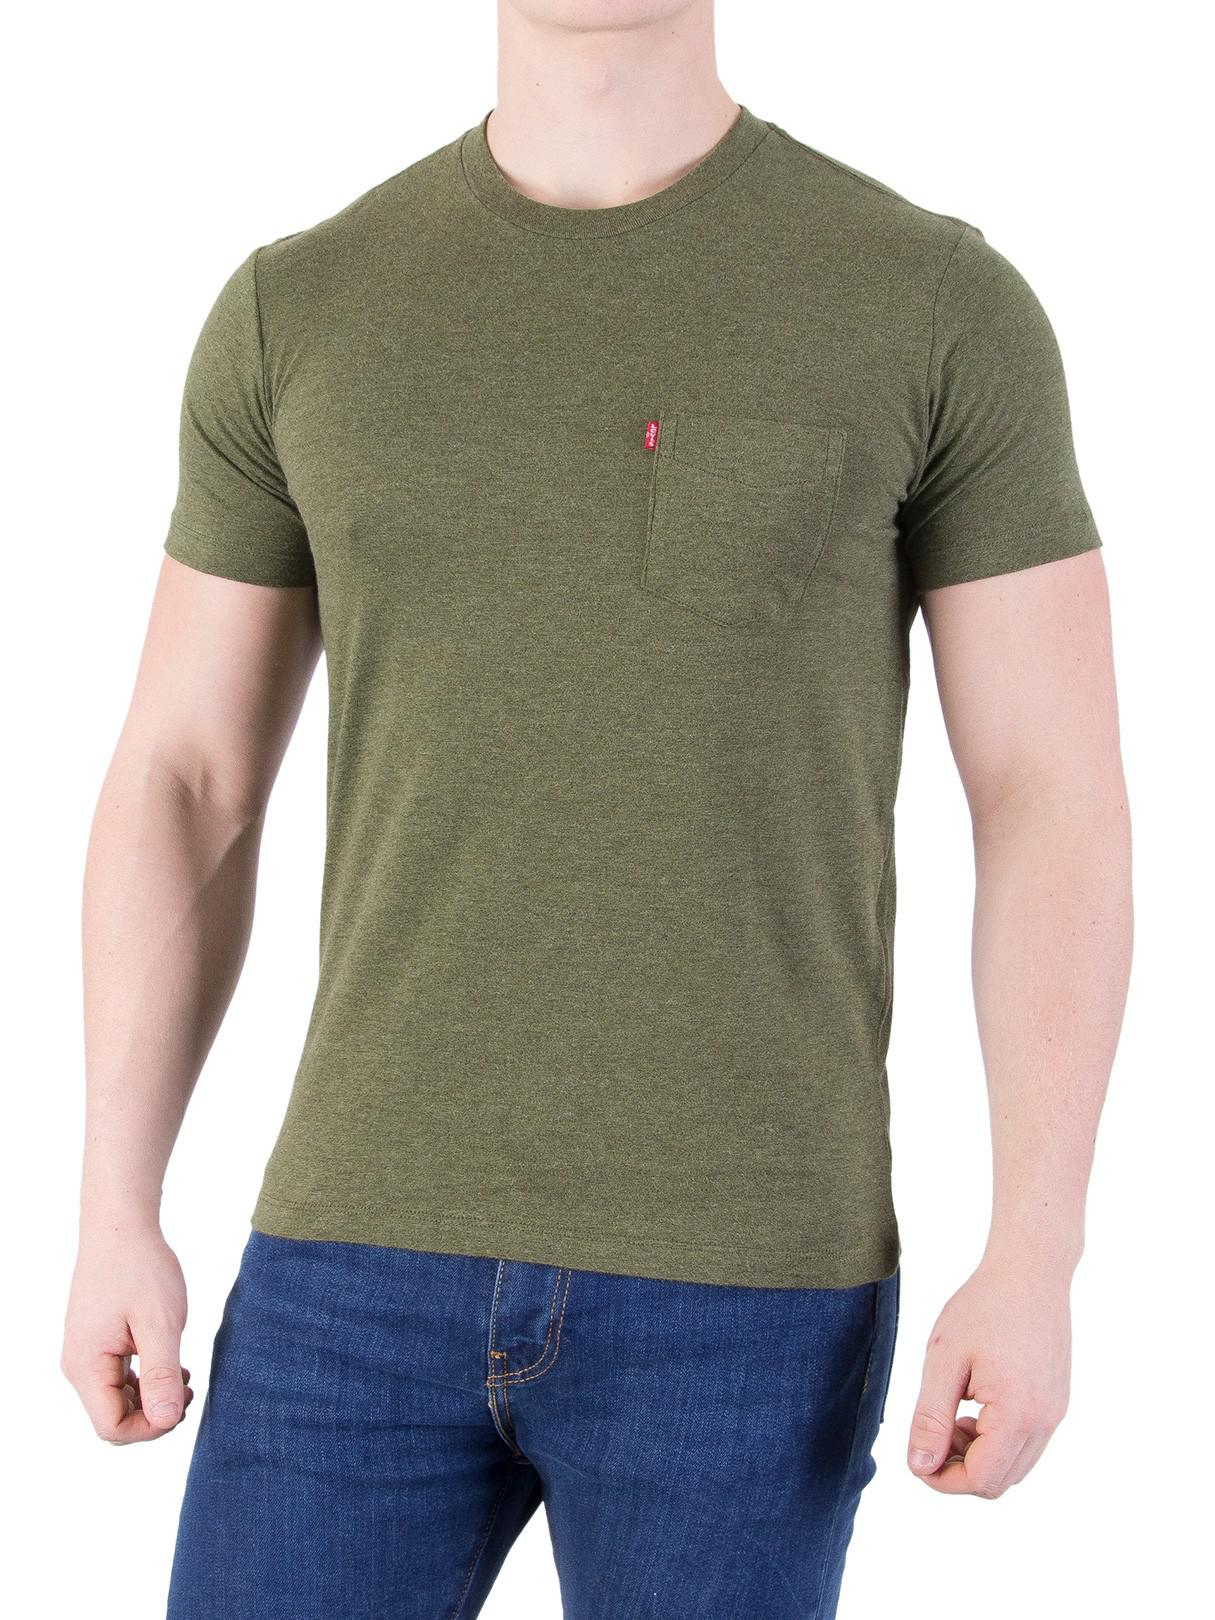 c8752524 Levi's Sea Moss Setin Sunset Pocket T-shirt in Green for Men - Lyst